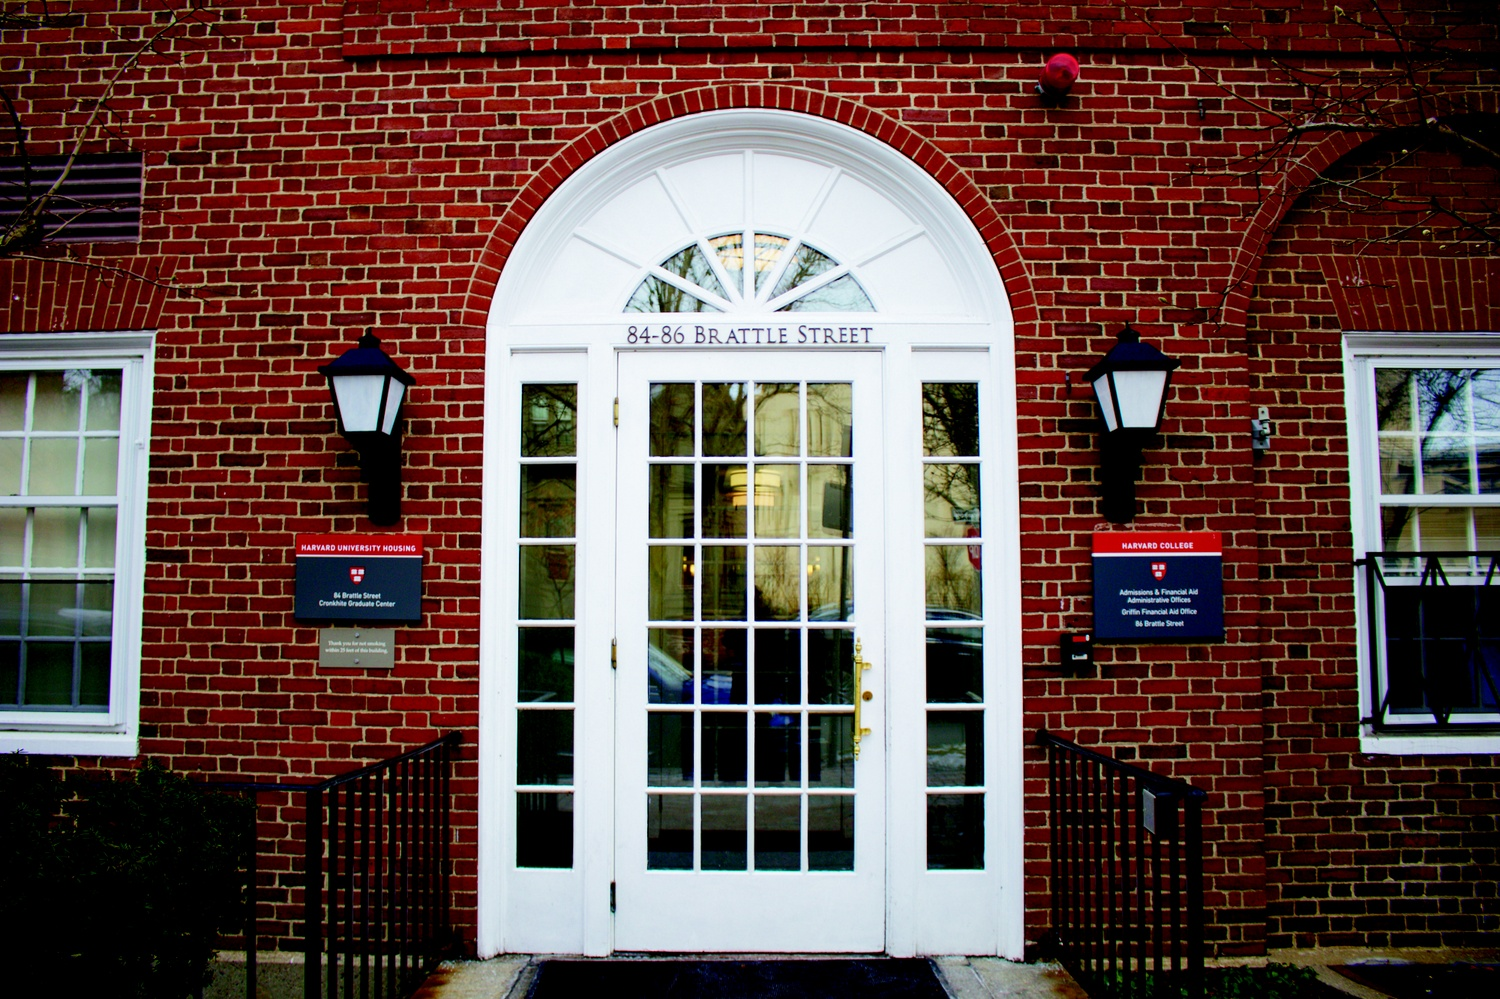 The Office of Admissions and Financial Aid is located at 86 Brattle Street.